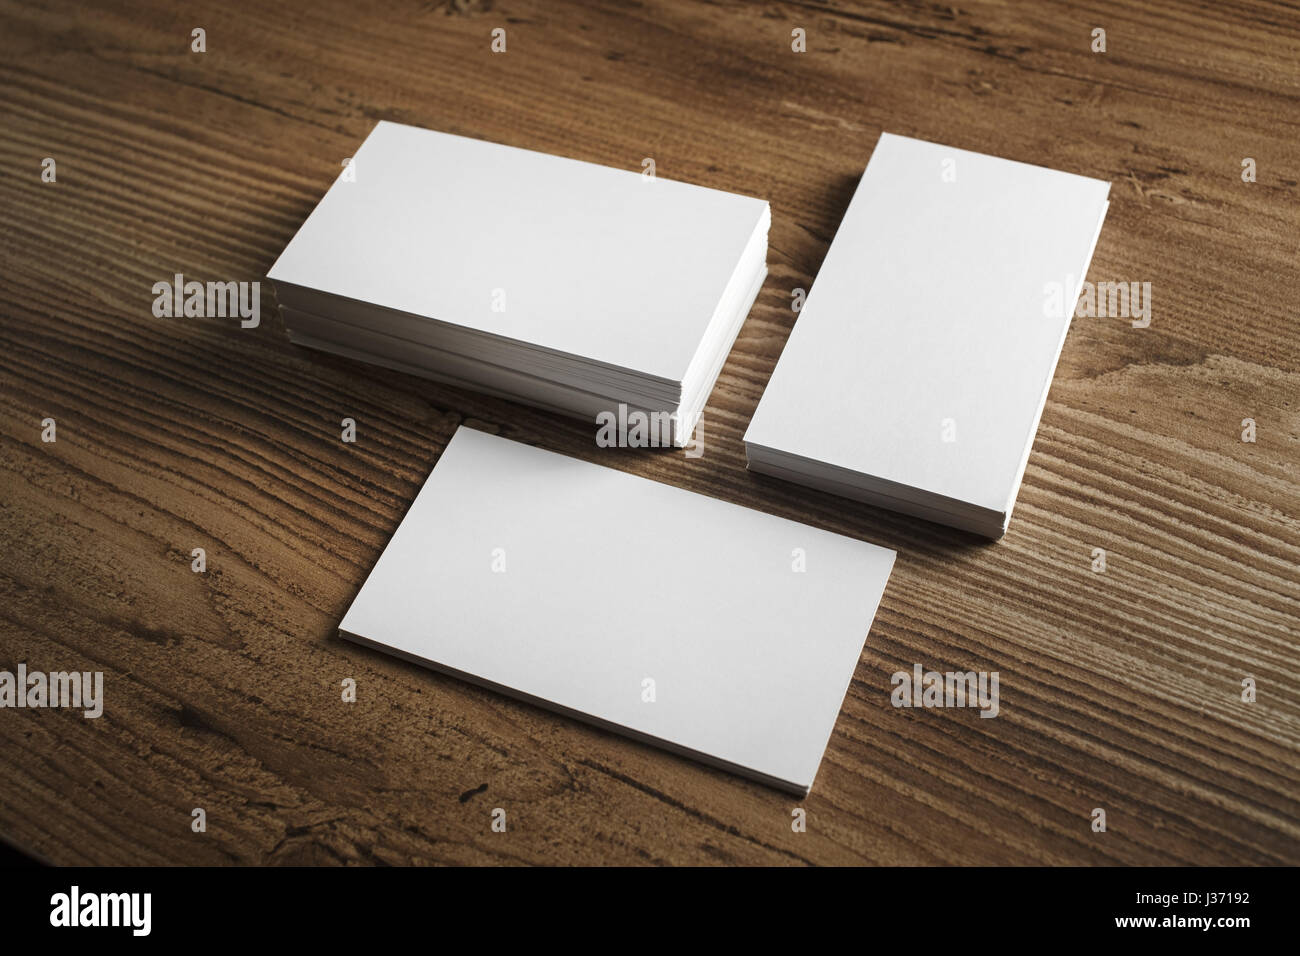 Photo of blank business cards blank business cards on wooden table photo of blank business cards blank business cards on wooden table background template for id mockup for branding identity reheart Image collections